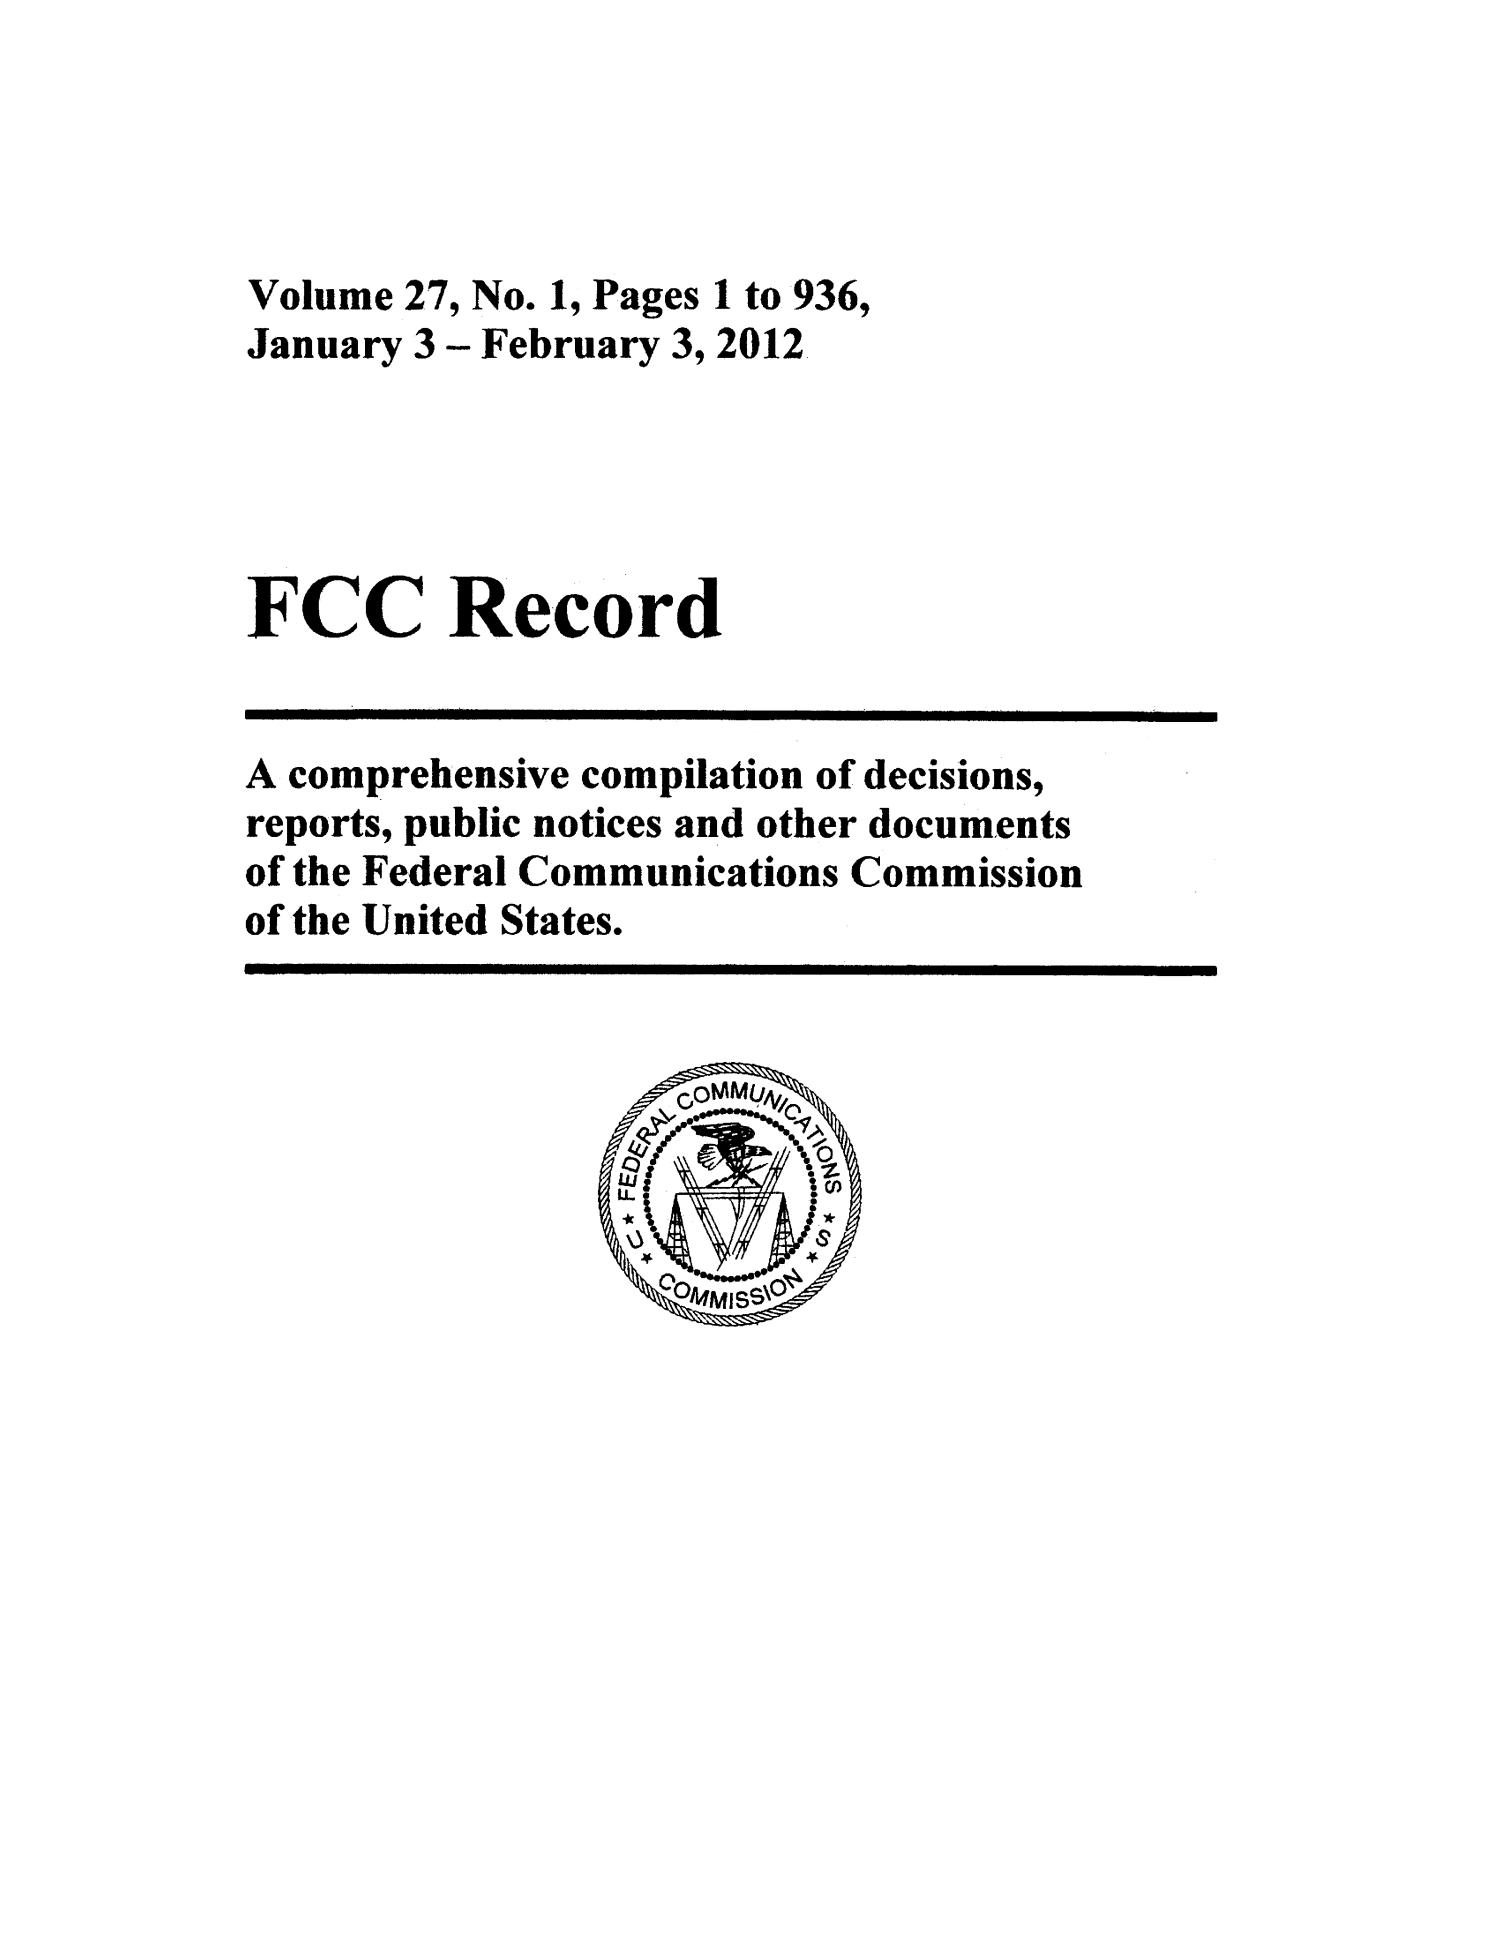 FCC Record, Volume 27, No. 1, Pages 1 to 936, January 3 - February 3, 2012                                                                                                      Front Cover